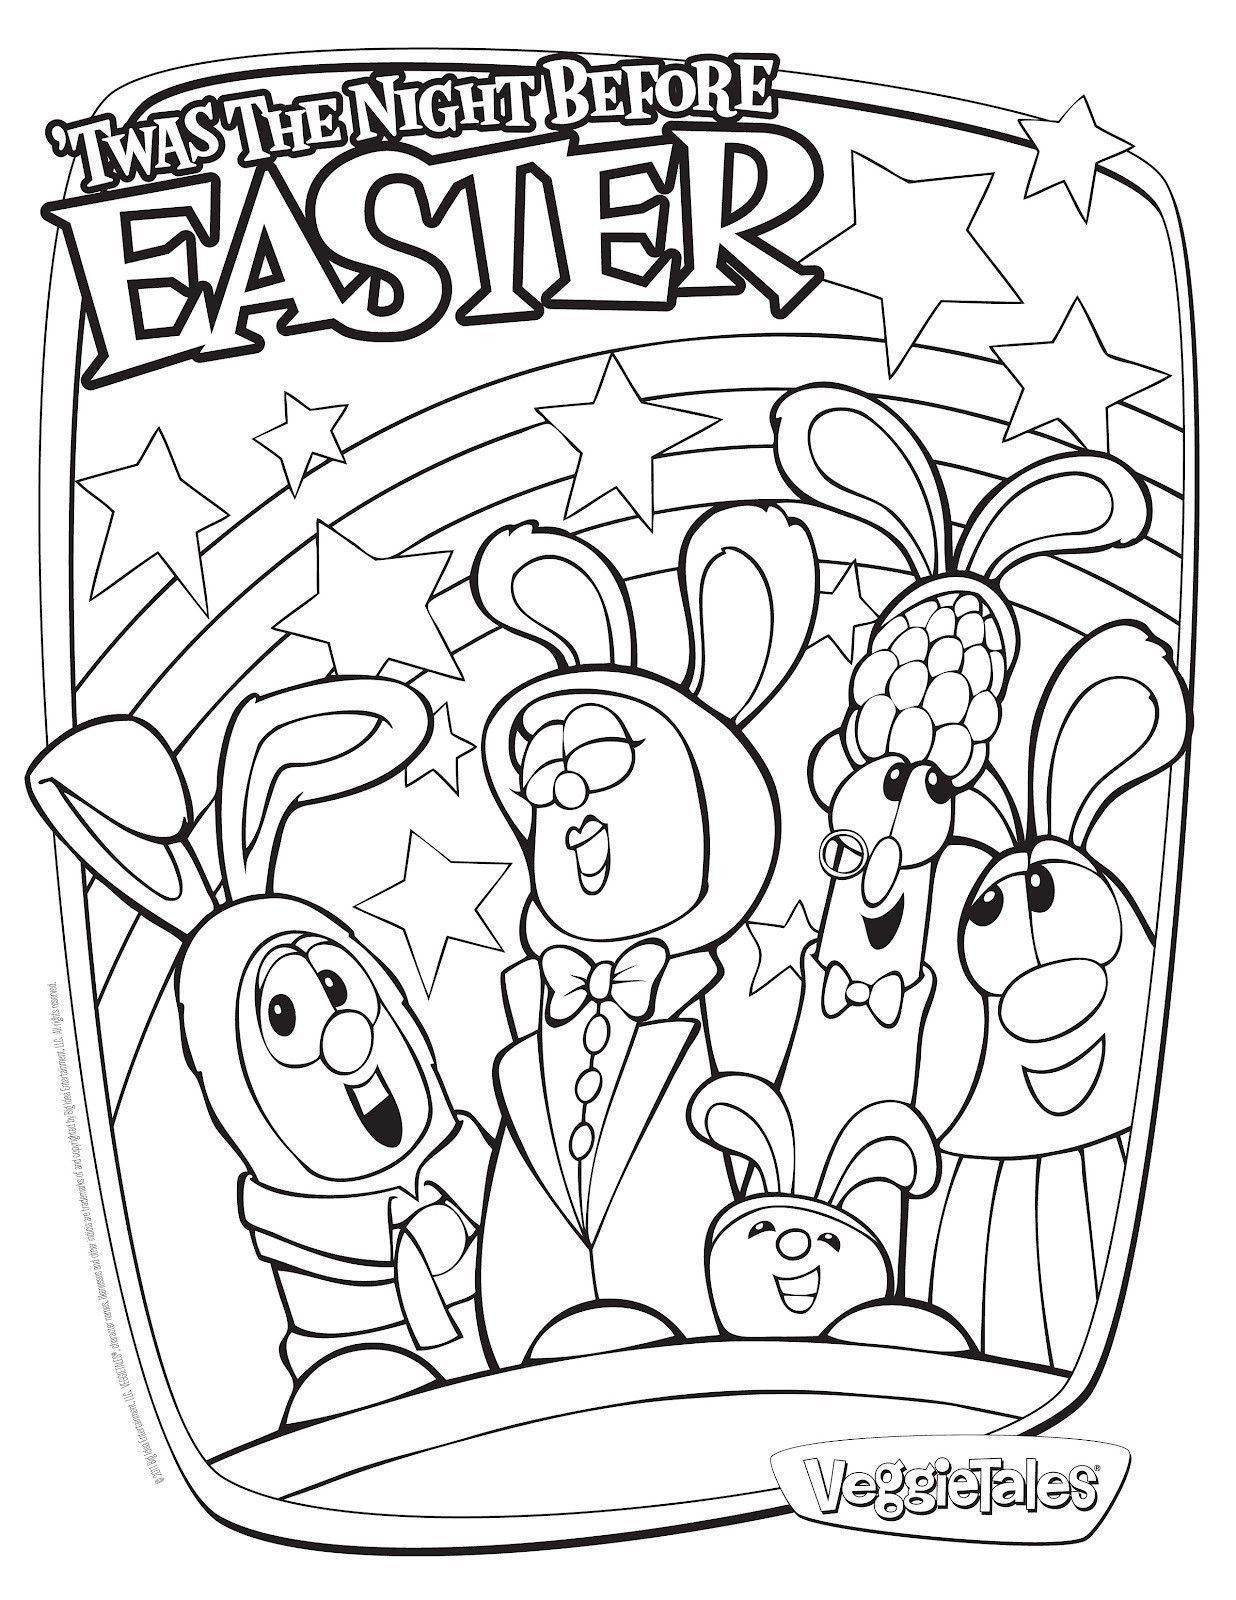 Bible Coloring Pages For Adults Fresh Free Printable Bible Coloring Pages Luxury Thanksgiving Coloring Pages Sunday School Coloring Pages Animal Coloring Pages